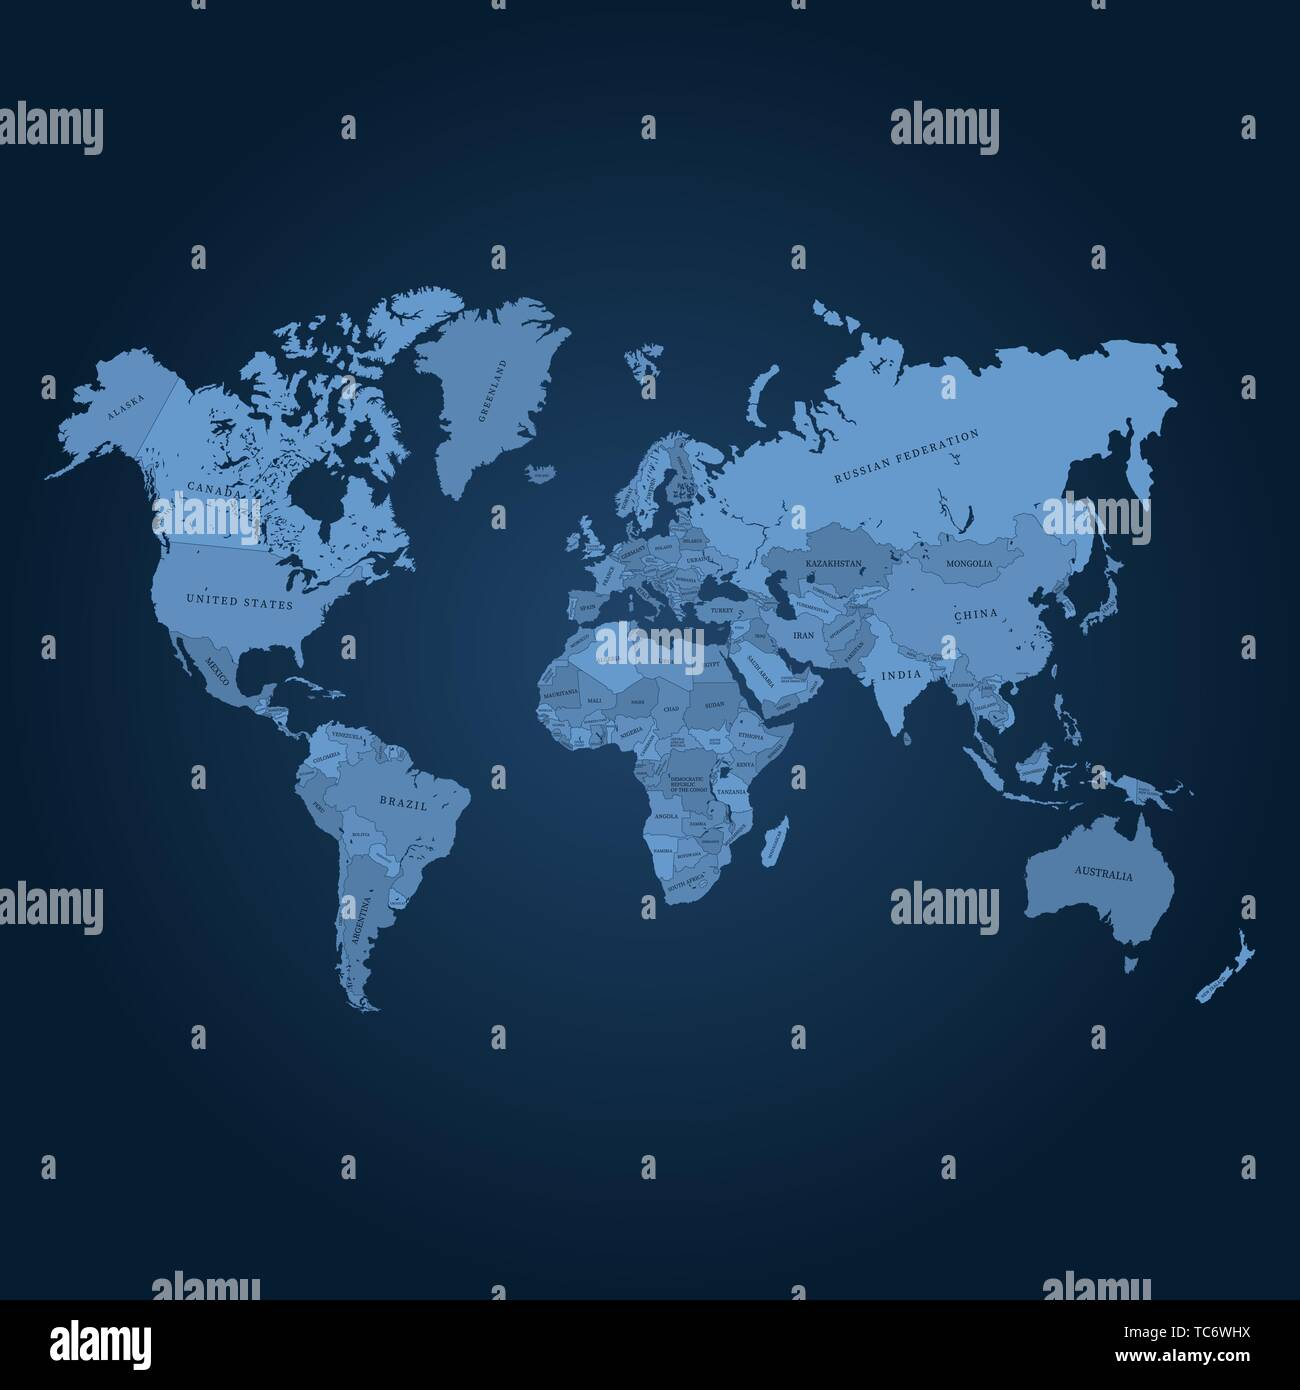 Accurate World Map Vector Vectors Stock Photos & Accurate ...